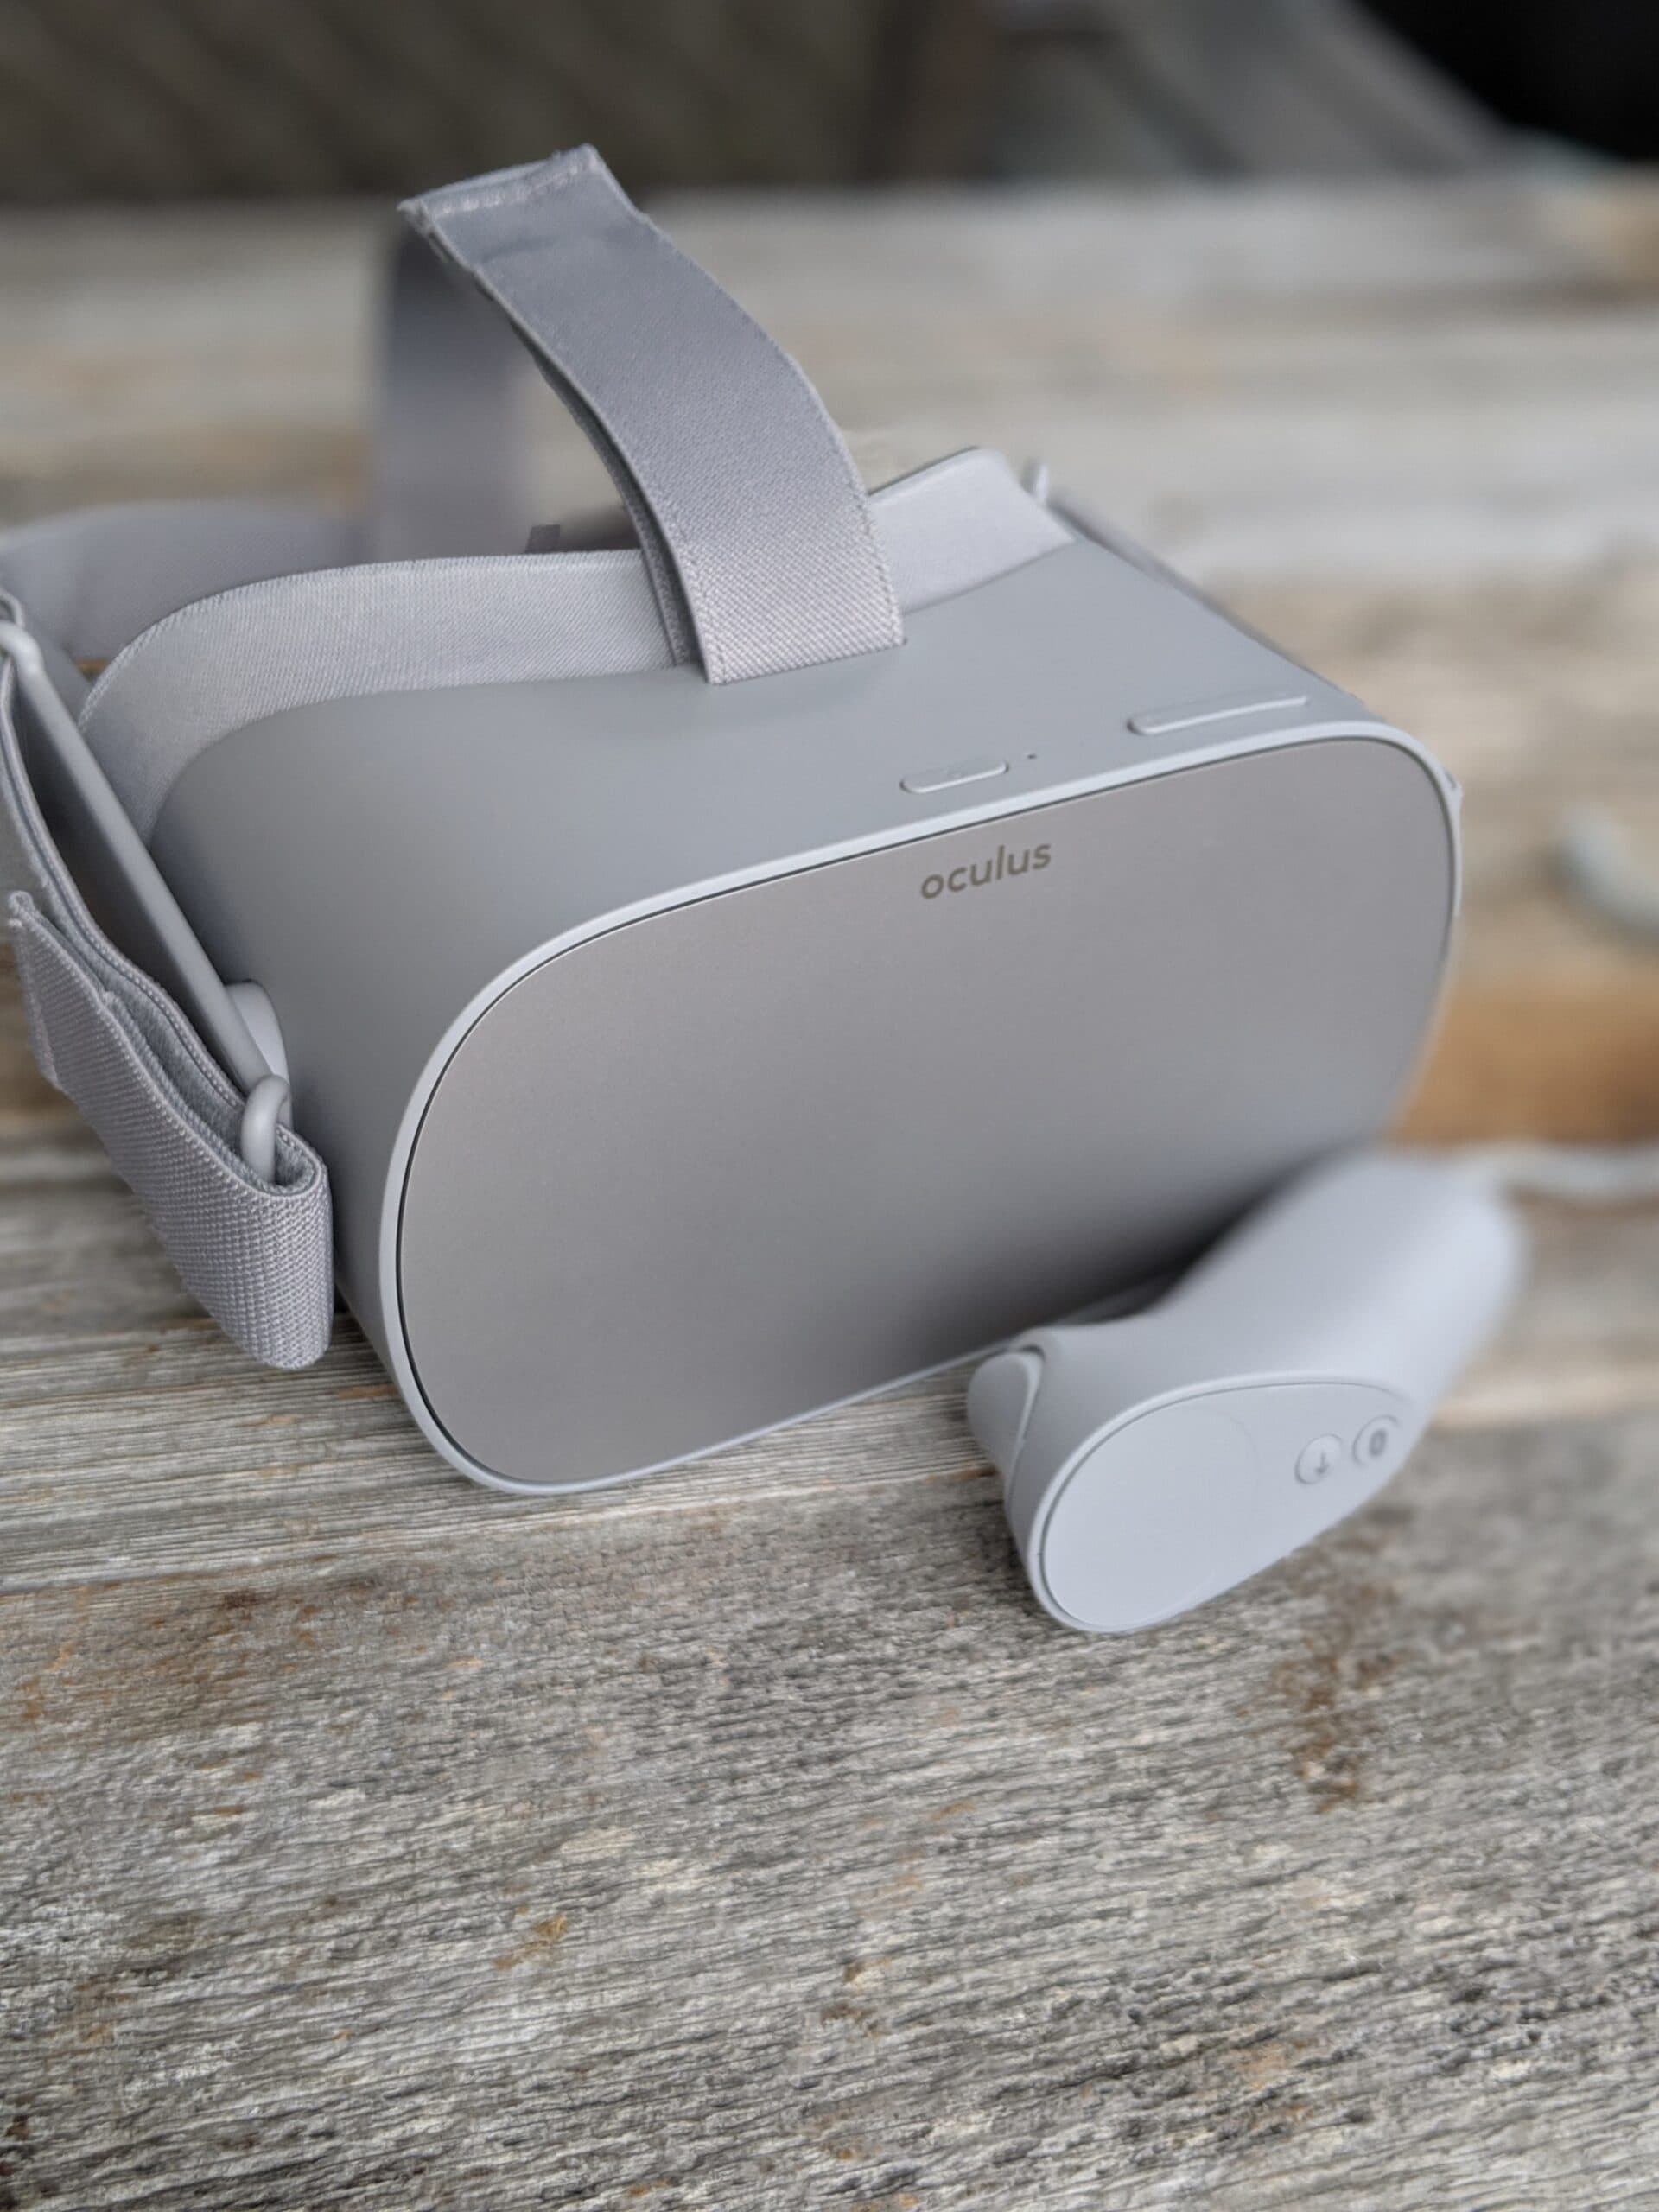 oculus Go Review - Small Package, Great Experience